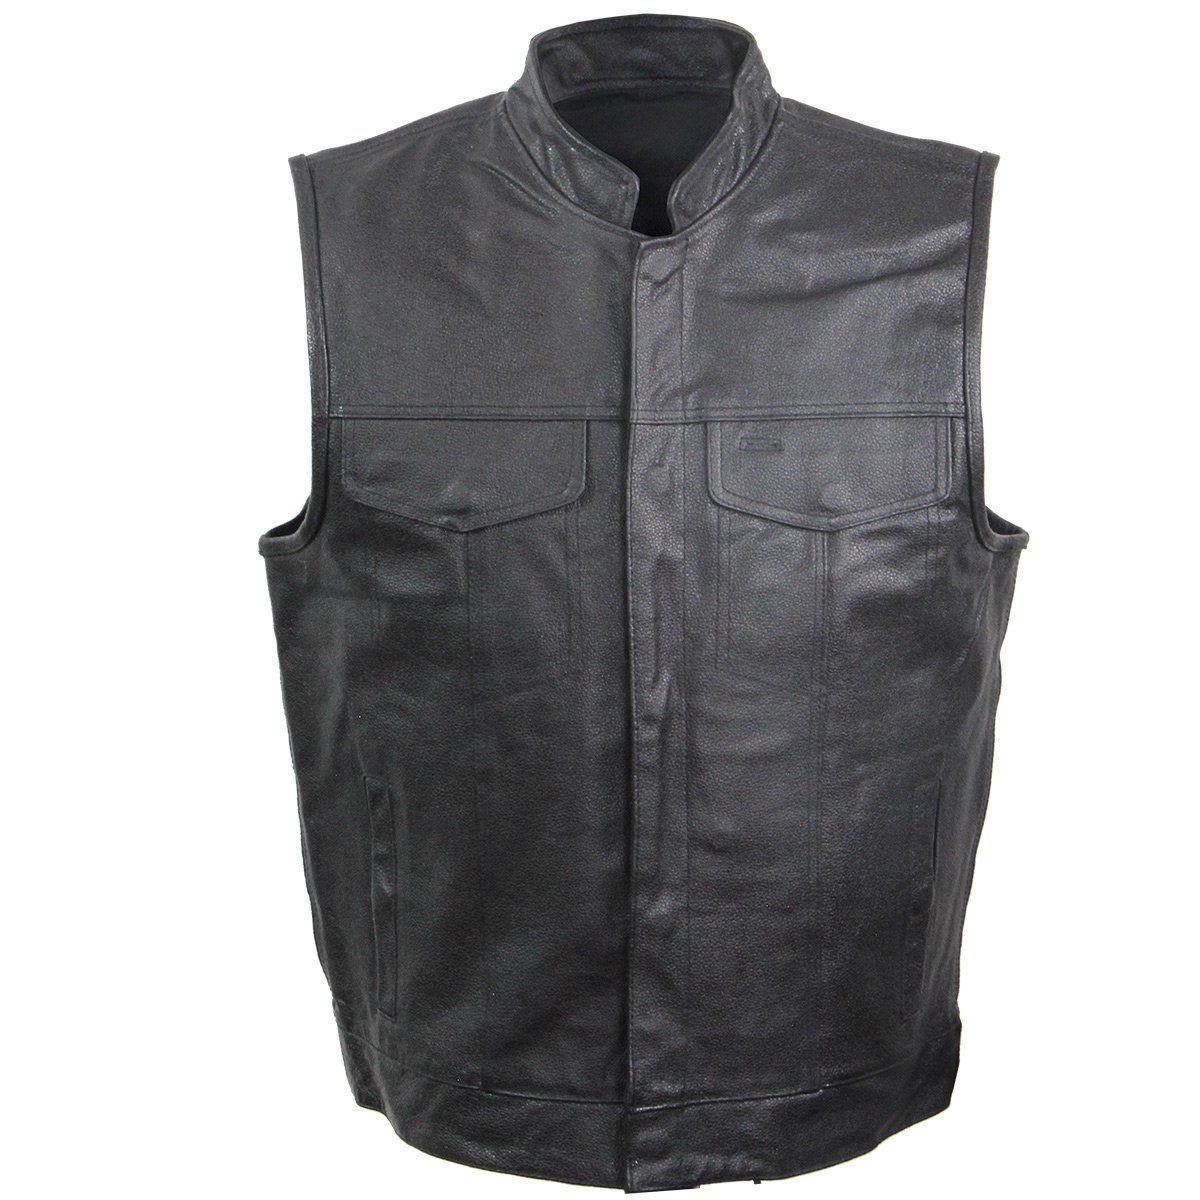 USA VC205 Mens Leather Rumble Vest with Gun Pocket - X-Large